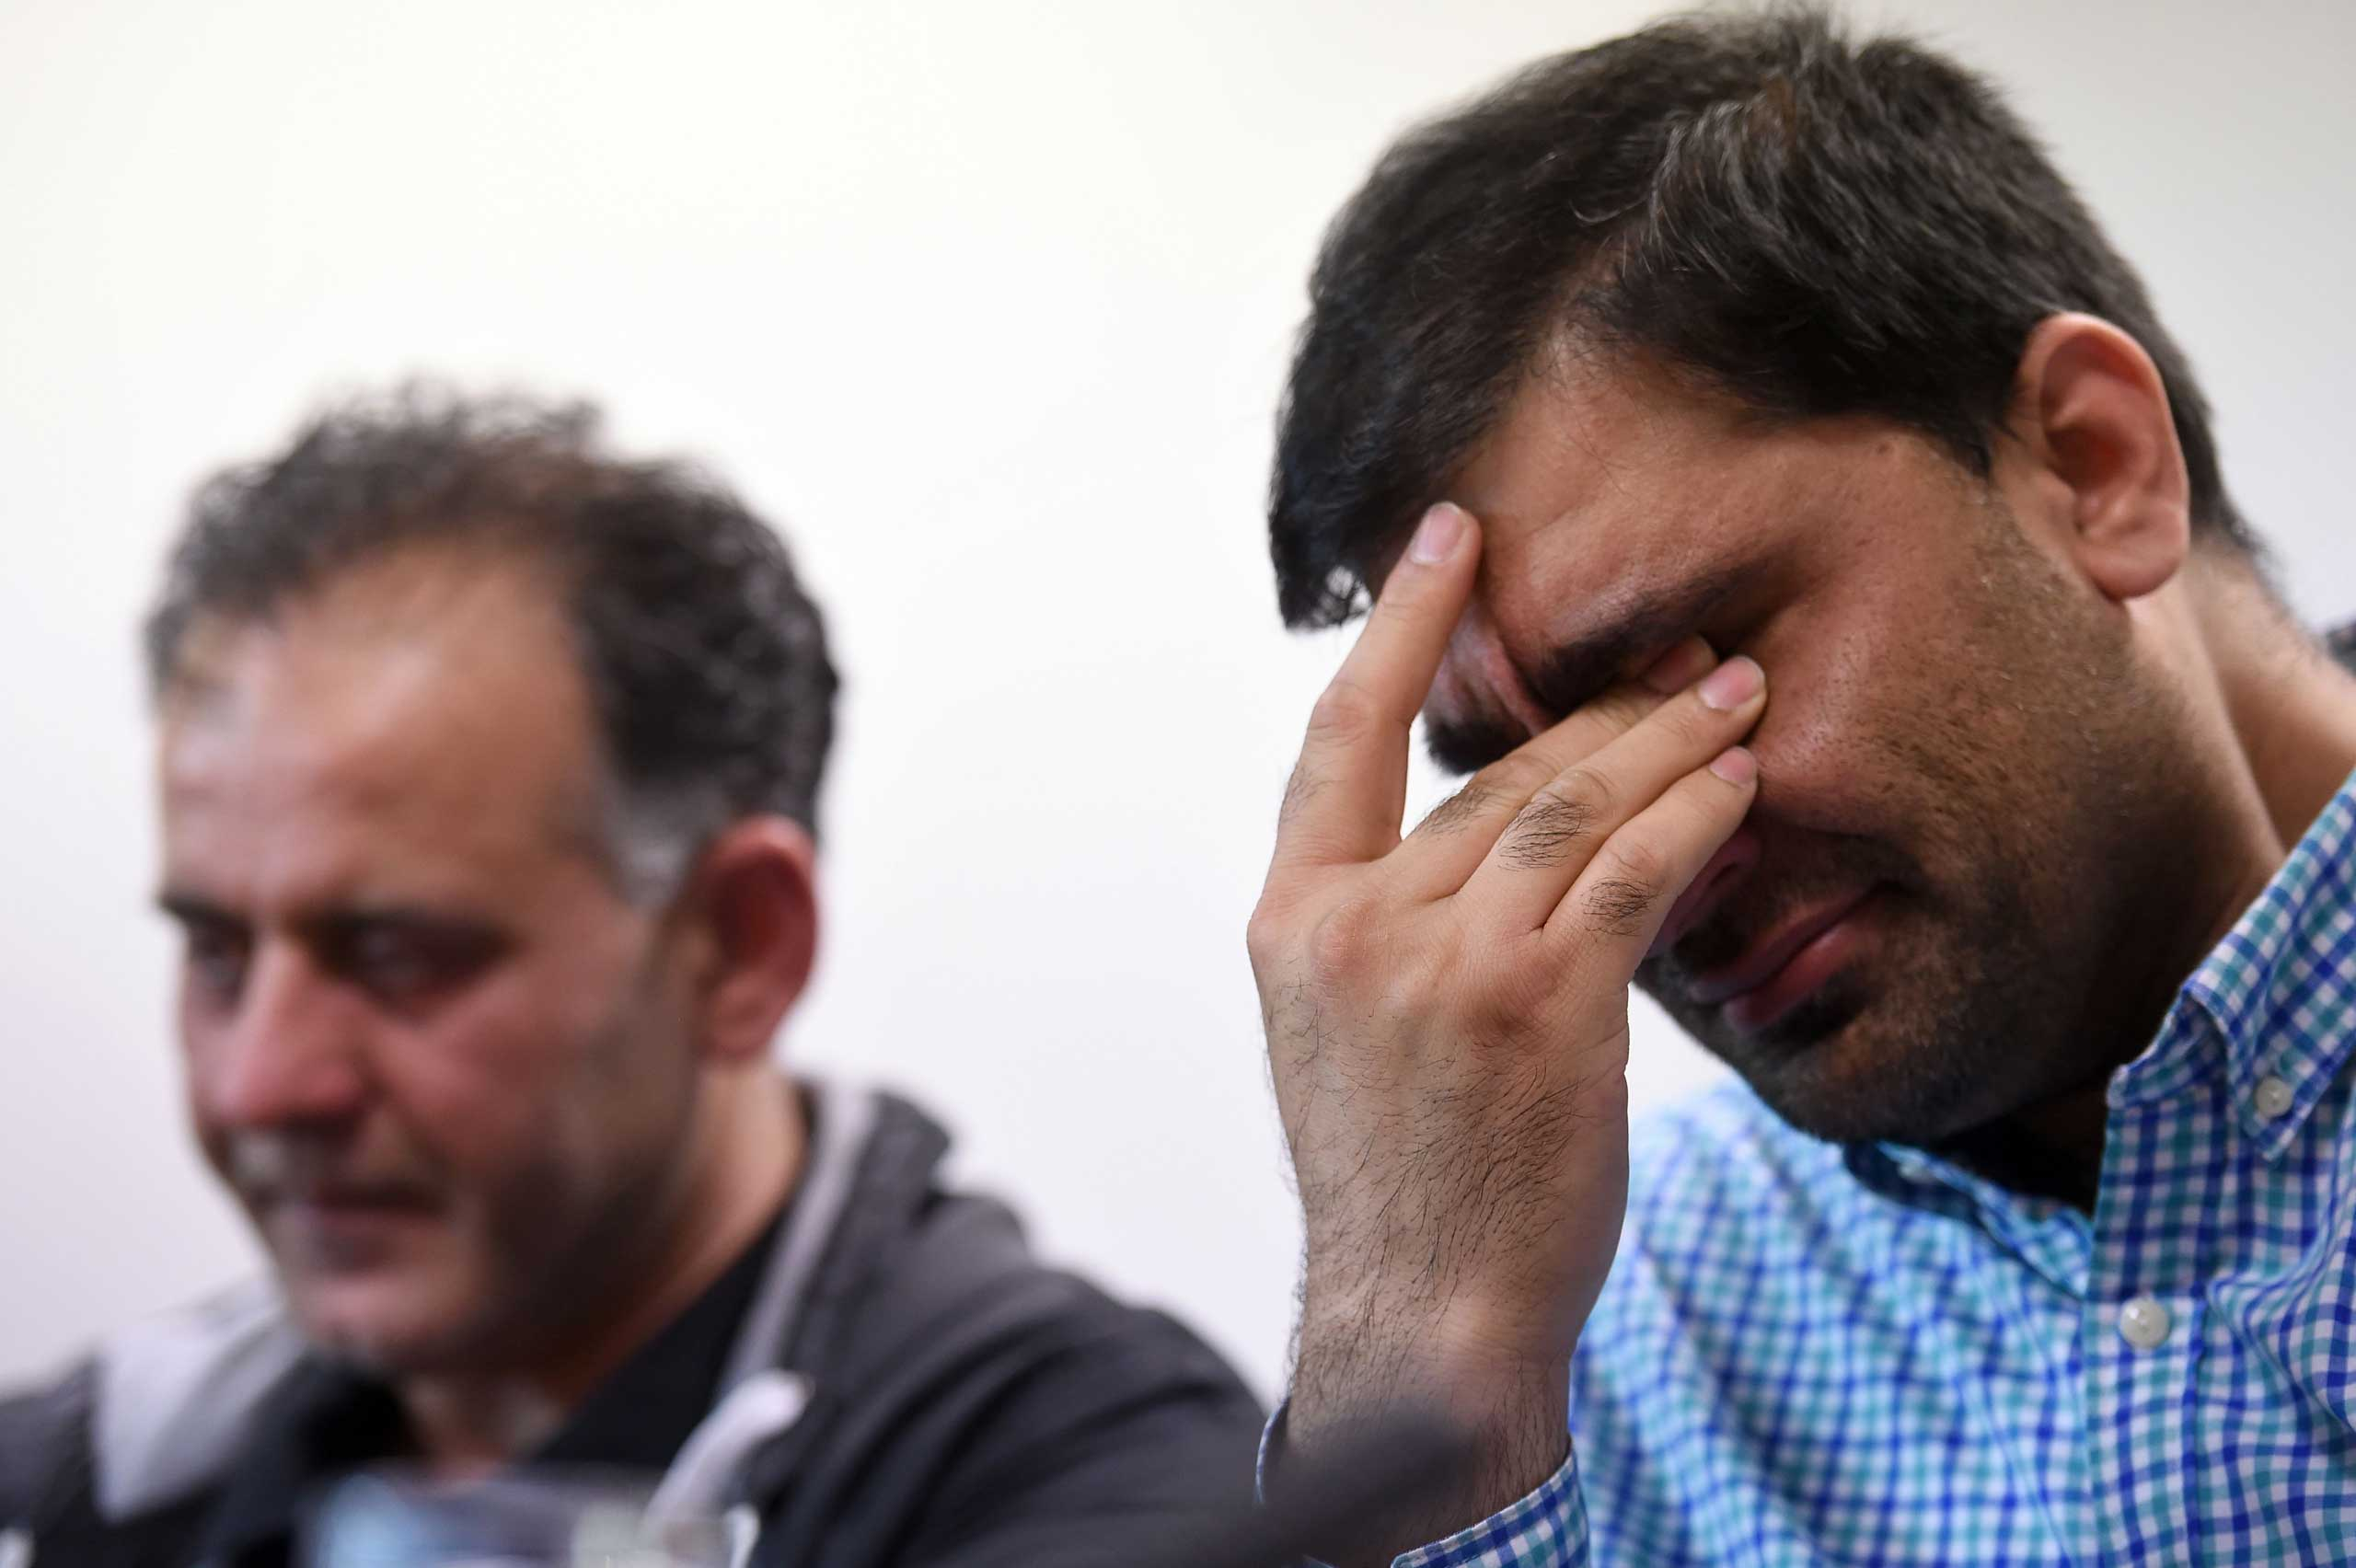 Akhtar Iqbal, husband of Sugra Dawood (L), and Mohammed Shoaib, husband of Khadija Dawood, react during a news conference to appeal for the return of their wives and children, in Bradford, northern England, on June 16, 2015.